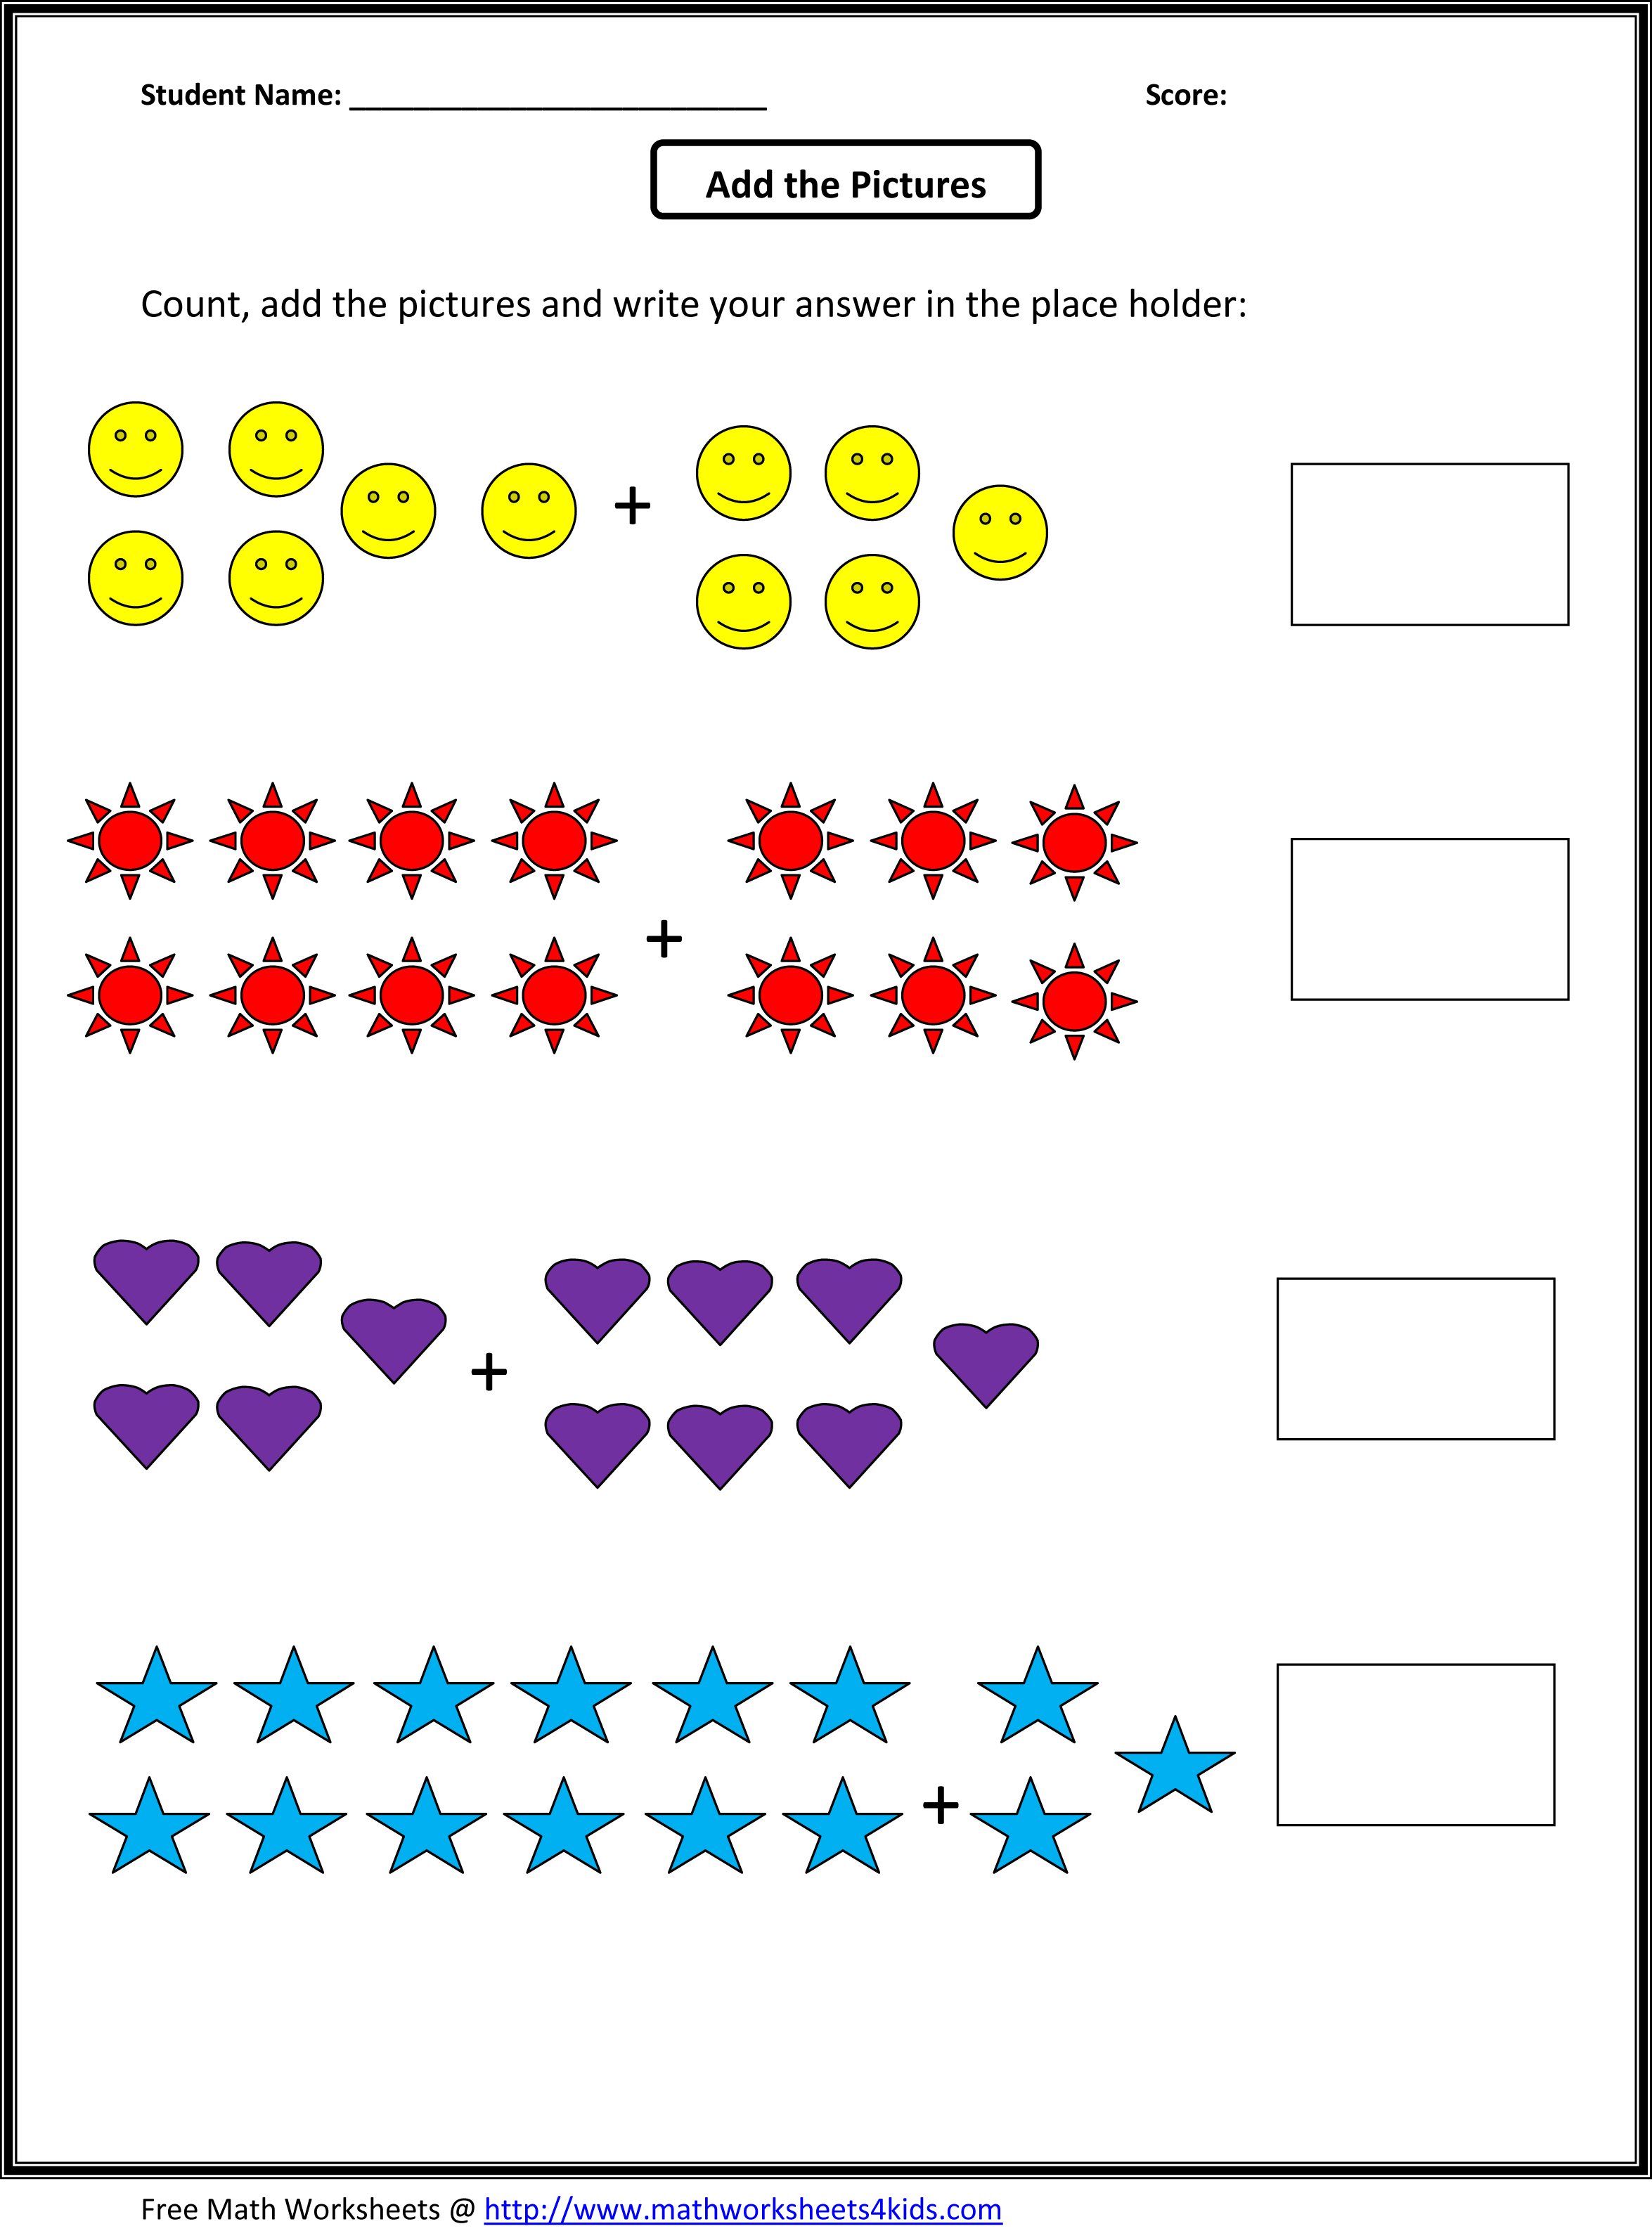 Proatmealus  Pretty Grade  Maths Worksheet  Reocurent With Extraordinary Math Worksheets For St Grade Free  Reocurent With Cute Free Esol Worksheets Also Select Worksheet In Addition Sounds Write Worksheets And Free Printable Language Worksheets As Well As Math Analogy Worksheets Additionally Pattern Worksheets For Grade  From Reocurentcom With Proatmealus  Extraordinary Grade  Maths Worksheet  Reocurent With Cute Math Worksheets For St Grade Free  Reocurent And Pretty Free Esol Worksheets Also Select Worksheet In Addition Sounds Write Worksheets From Reocurentcom